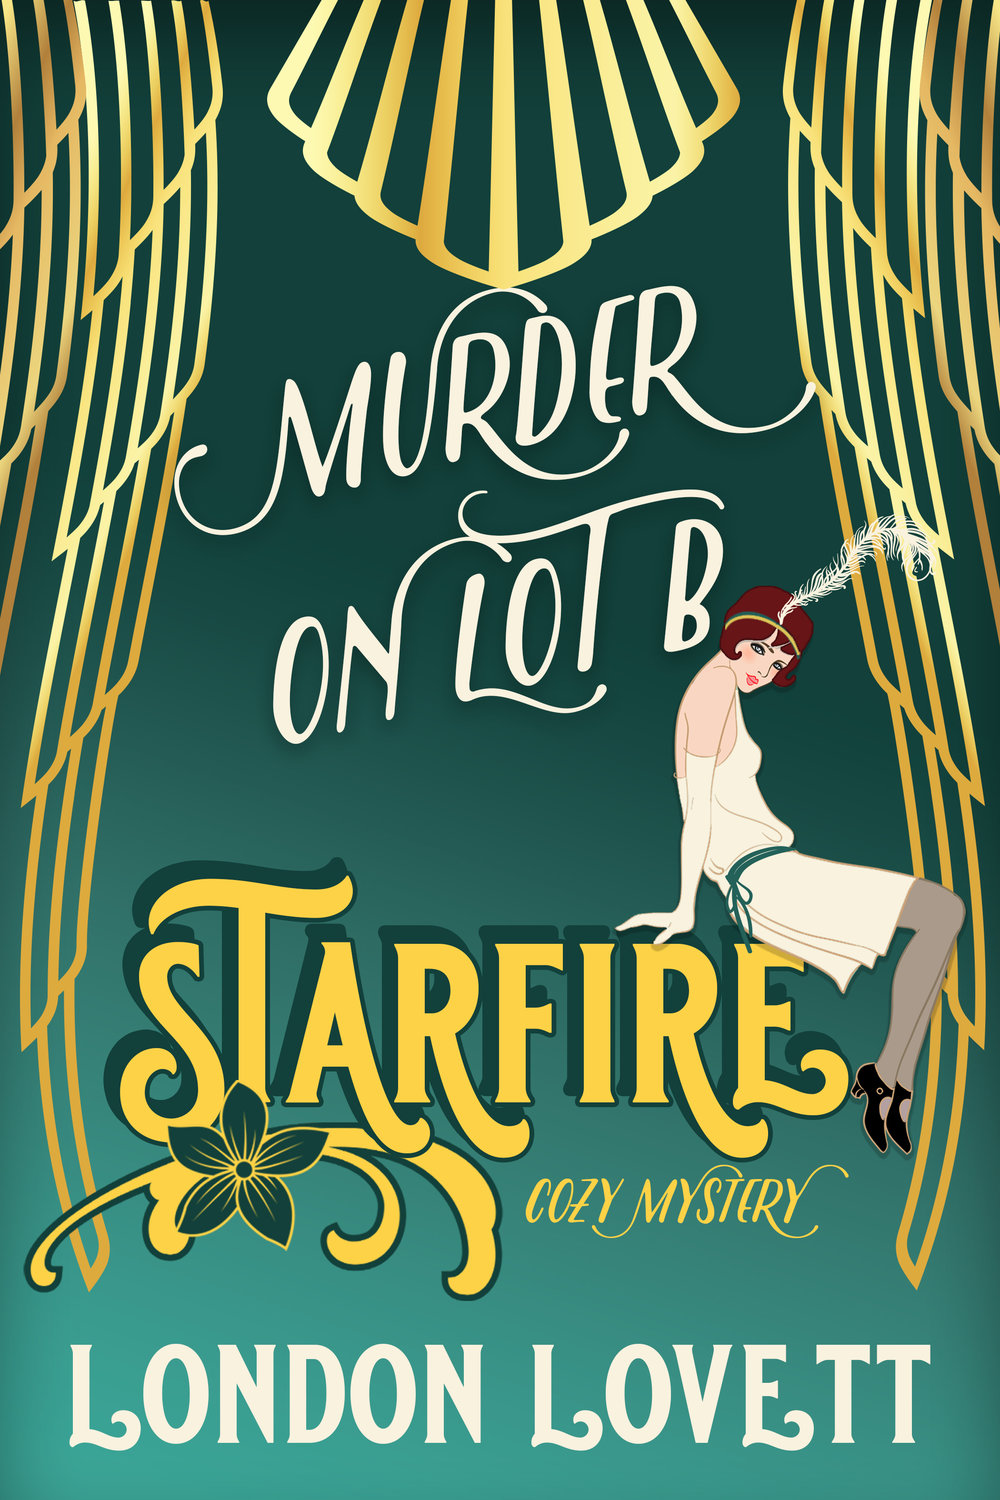 Murder on Lot B - Los Angeles, 1923. The land of movie stars and perpetual sunshine has a stylish new force to be reckoned with—Poppy Starfire, Private Investigator.Poppy recently moved out on her own and is eager for a taste of independence and to prove to her retired Uncle Sherman that she is capable of running the Starfire Detective Agency. Her brother Jasper has also joined the agency. Poppy prides herself on being a skilled investigator but so far the cases have been scarce and to say the least uninspiring. But that all changes when Anna Colton walks through the door. Anna's brother Roger, a famous stuntman for the local movie studio has died in a well-publicized accidental fall. Only Anna's not convinced it was an accident. It's up to Poppy and Jasper to peel away the layers and uncover the truth. Who killed Roger 'Rowdy' James?Read on: Amazon iBooks Nook Kobo Google